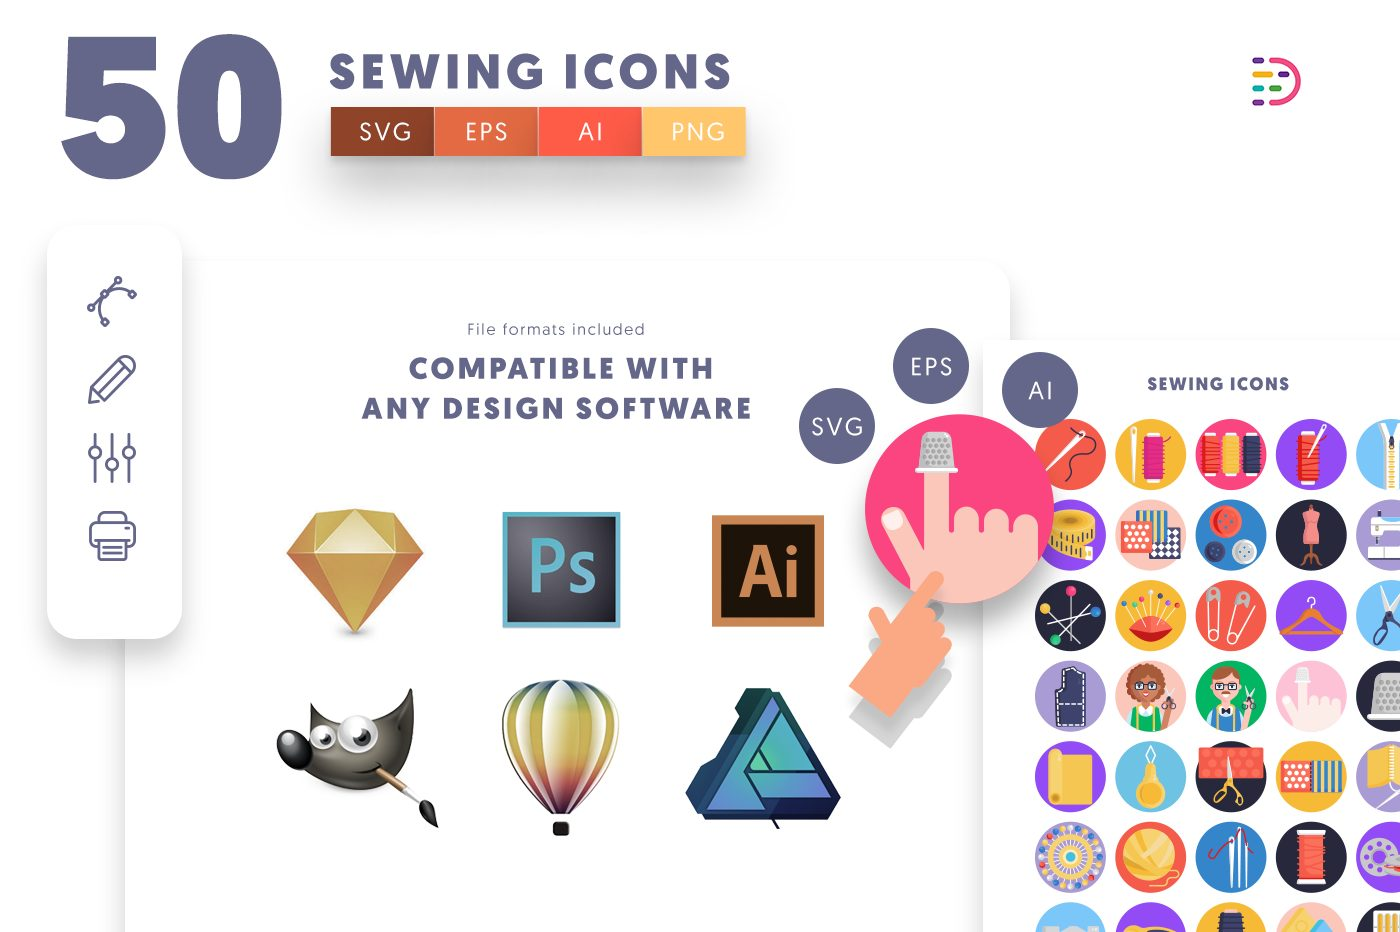 full vector 50 Sewing Icons EPS, SVG, PNG